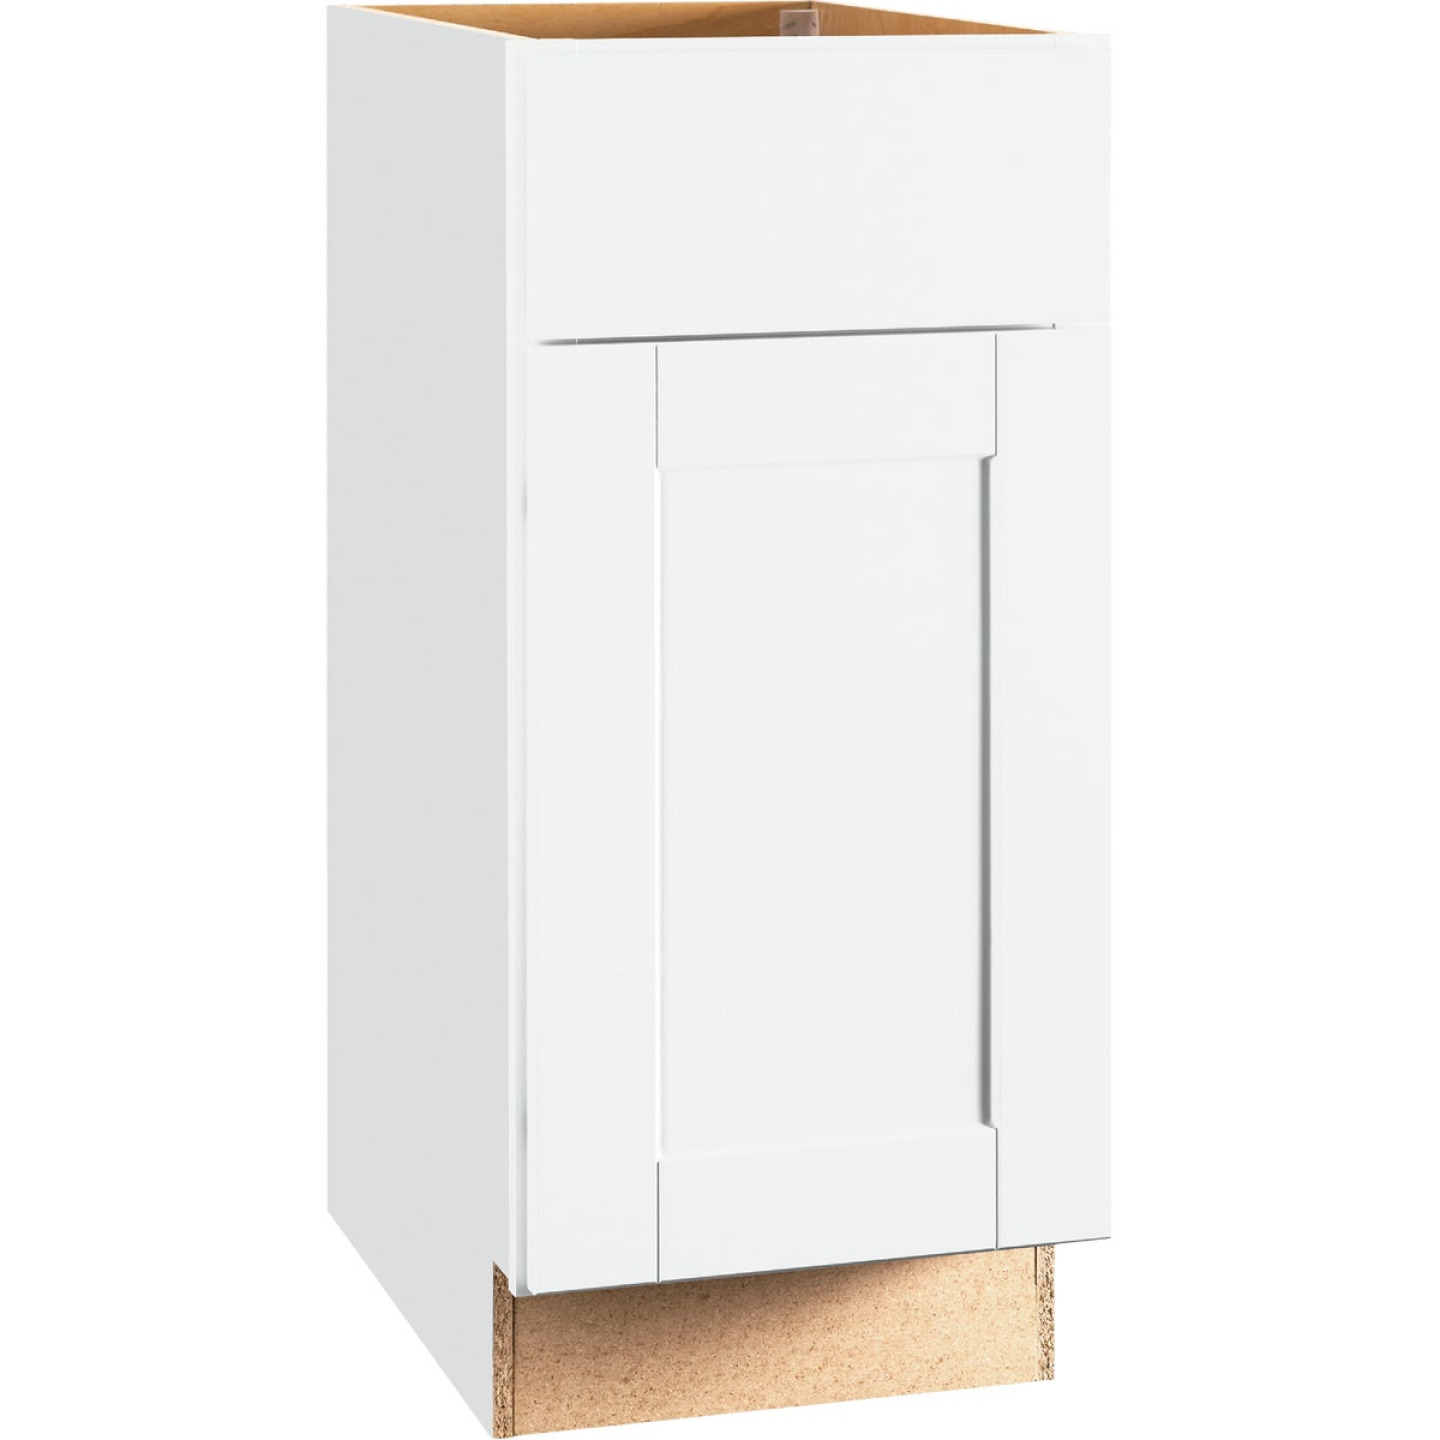 Continental Cabinets Andover Shaker 15 In. W x 34 In. H x 24 In. D White Thermofoil Base Kitchen Cabinet Image 1